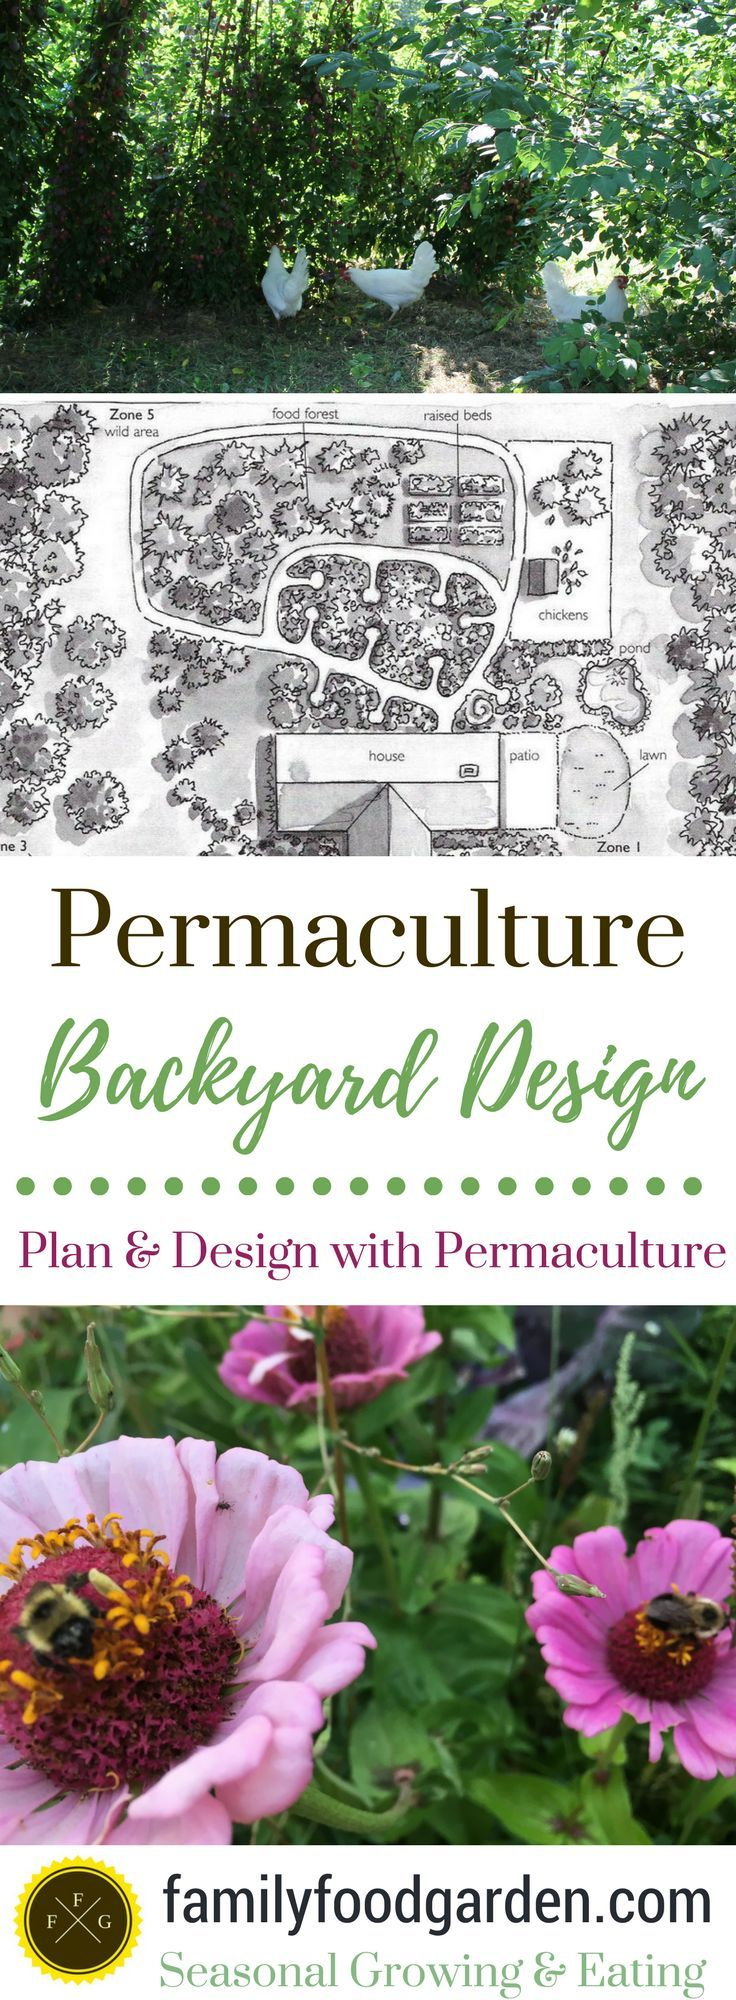 Backyard Permaculture Design & Tips | Permaculture design ...